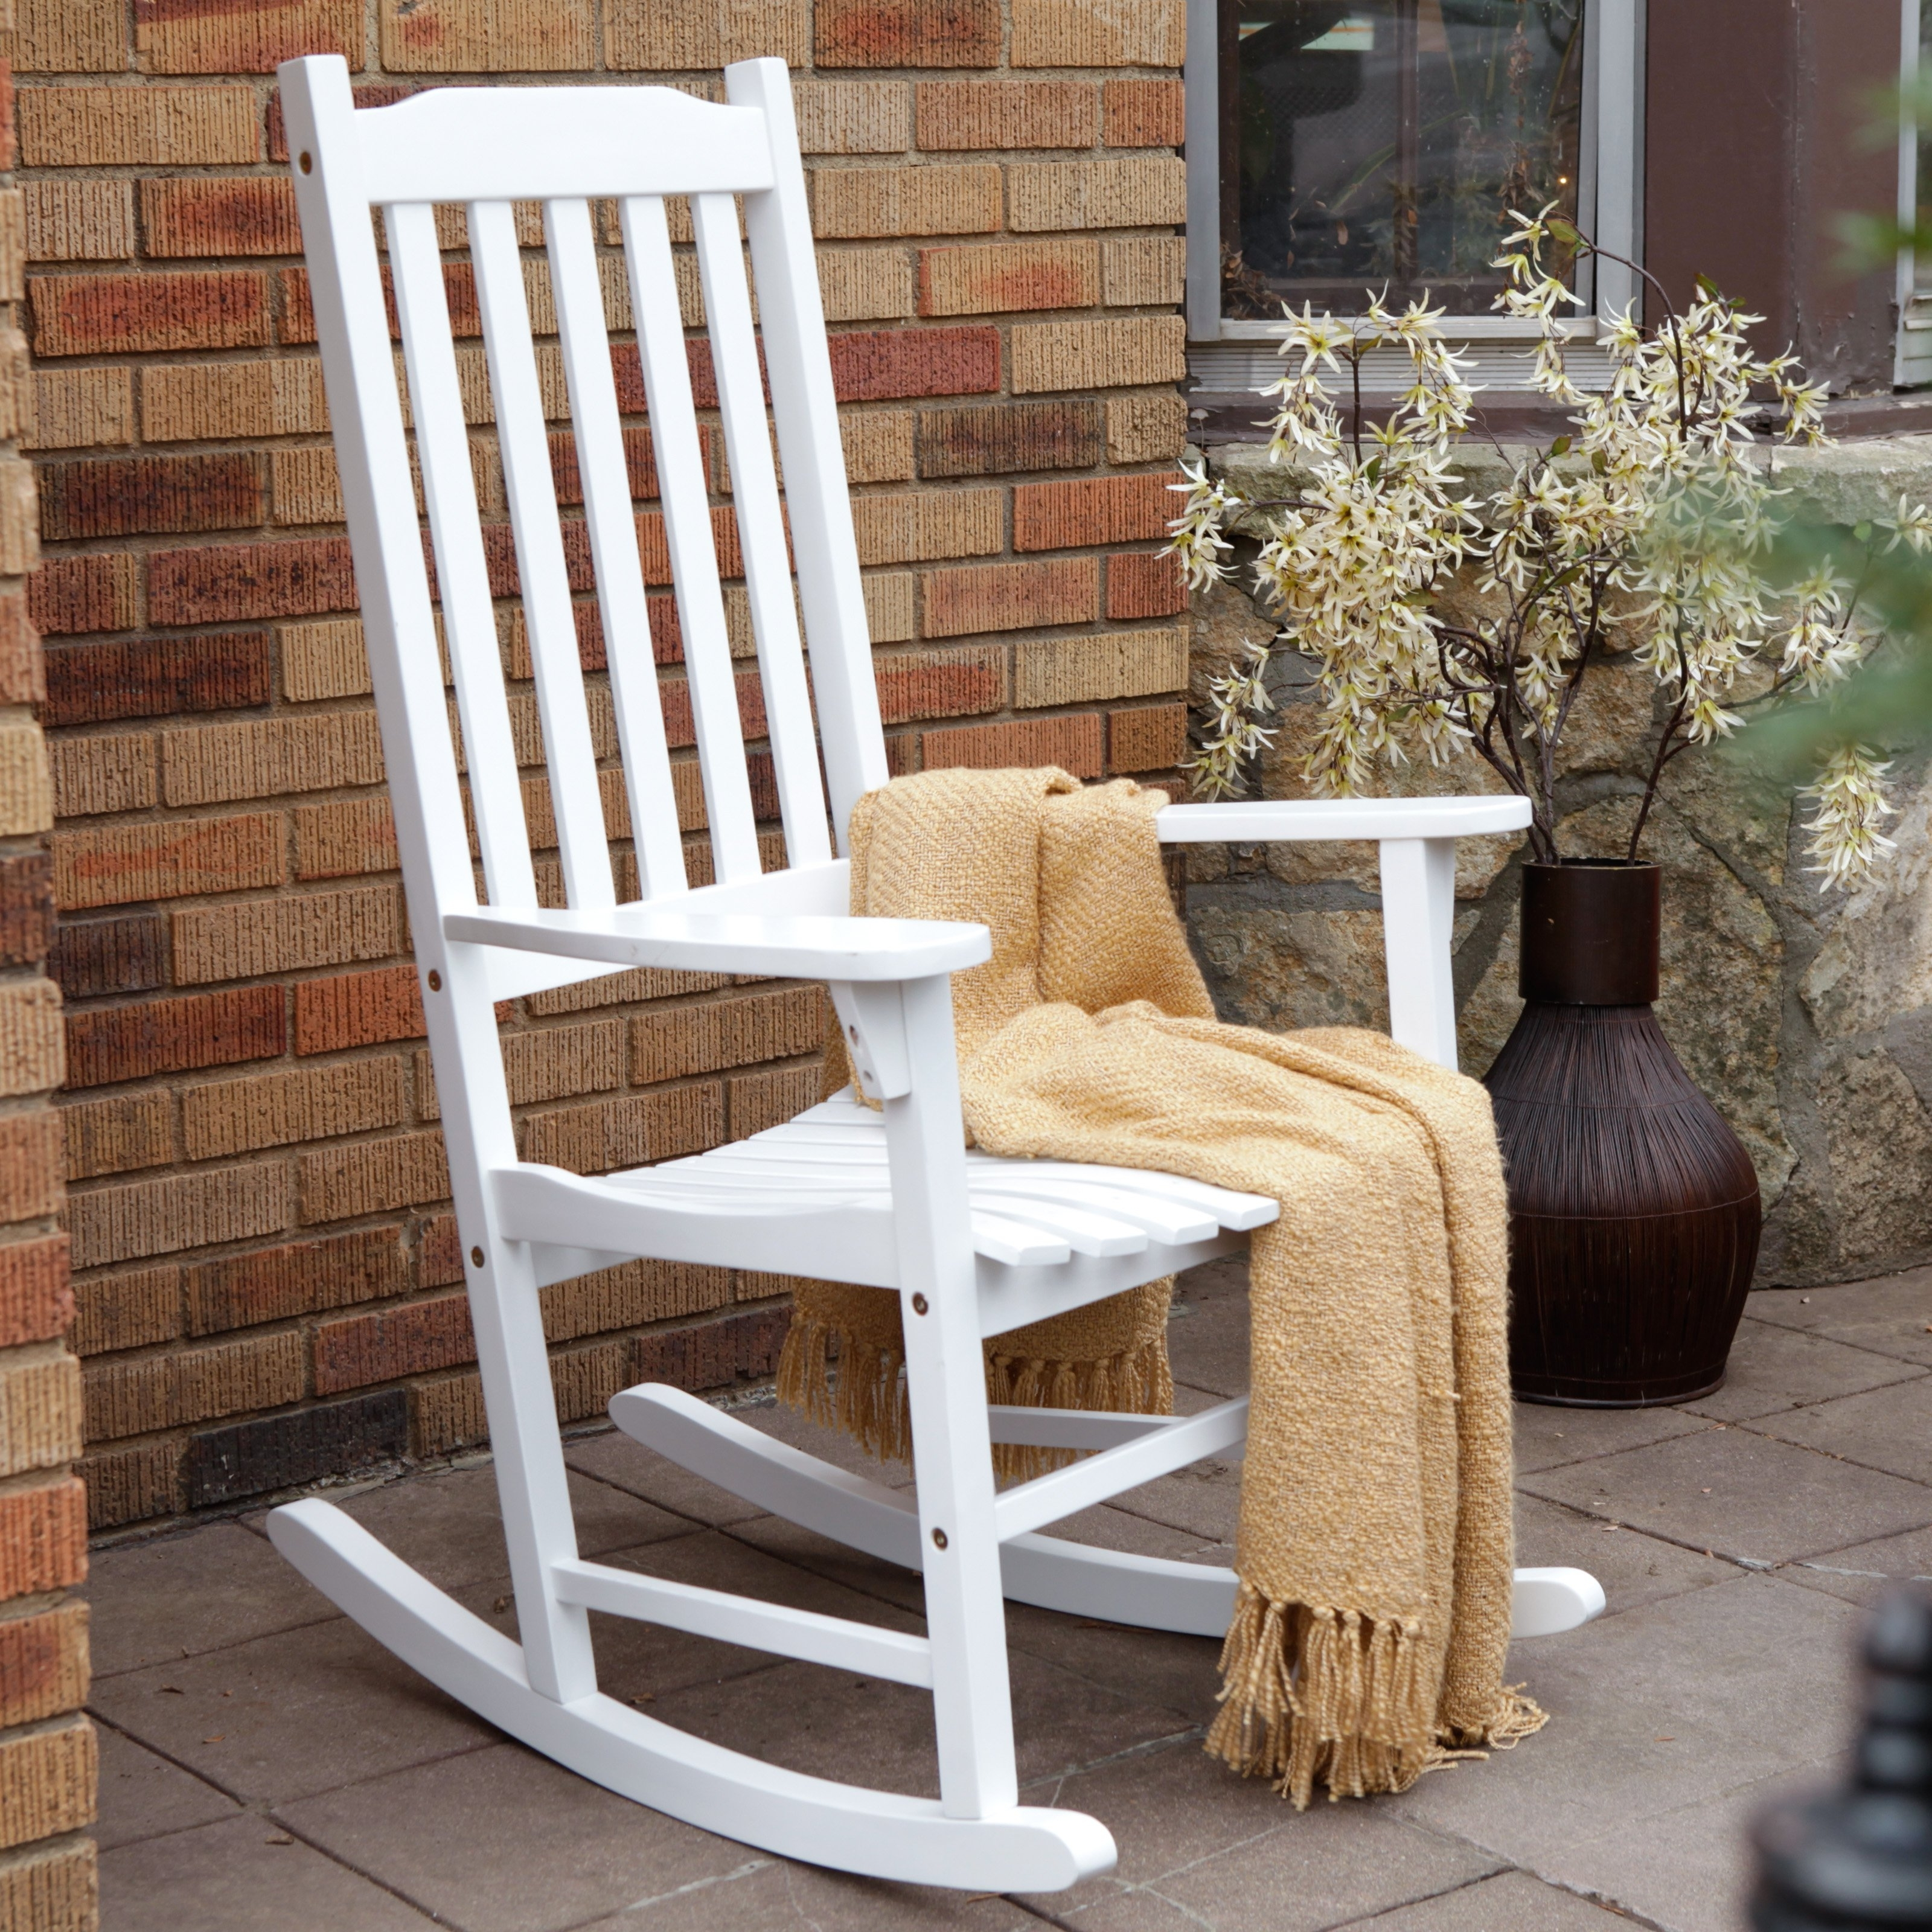 Furniture: Inspiring Outdoor Rocking Chair For Your Porch Or Your Pertaining To Well Liked Rocking Chair Outdoor Wooden (View 3 of 15)